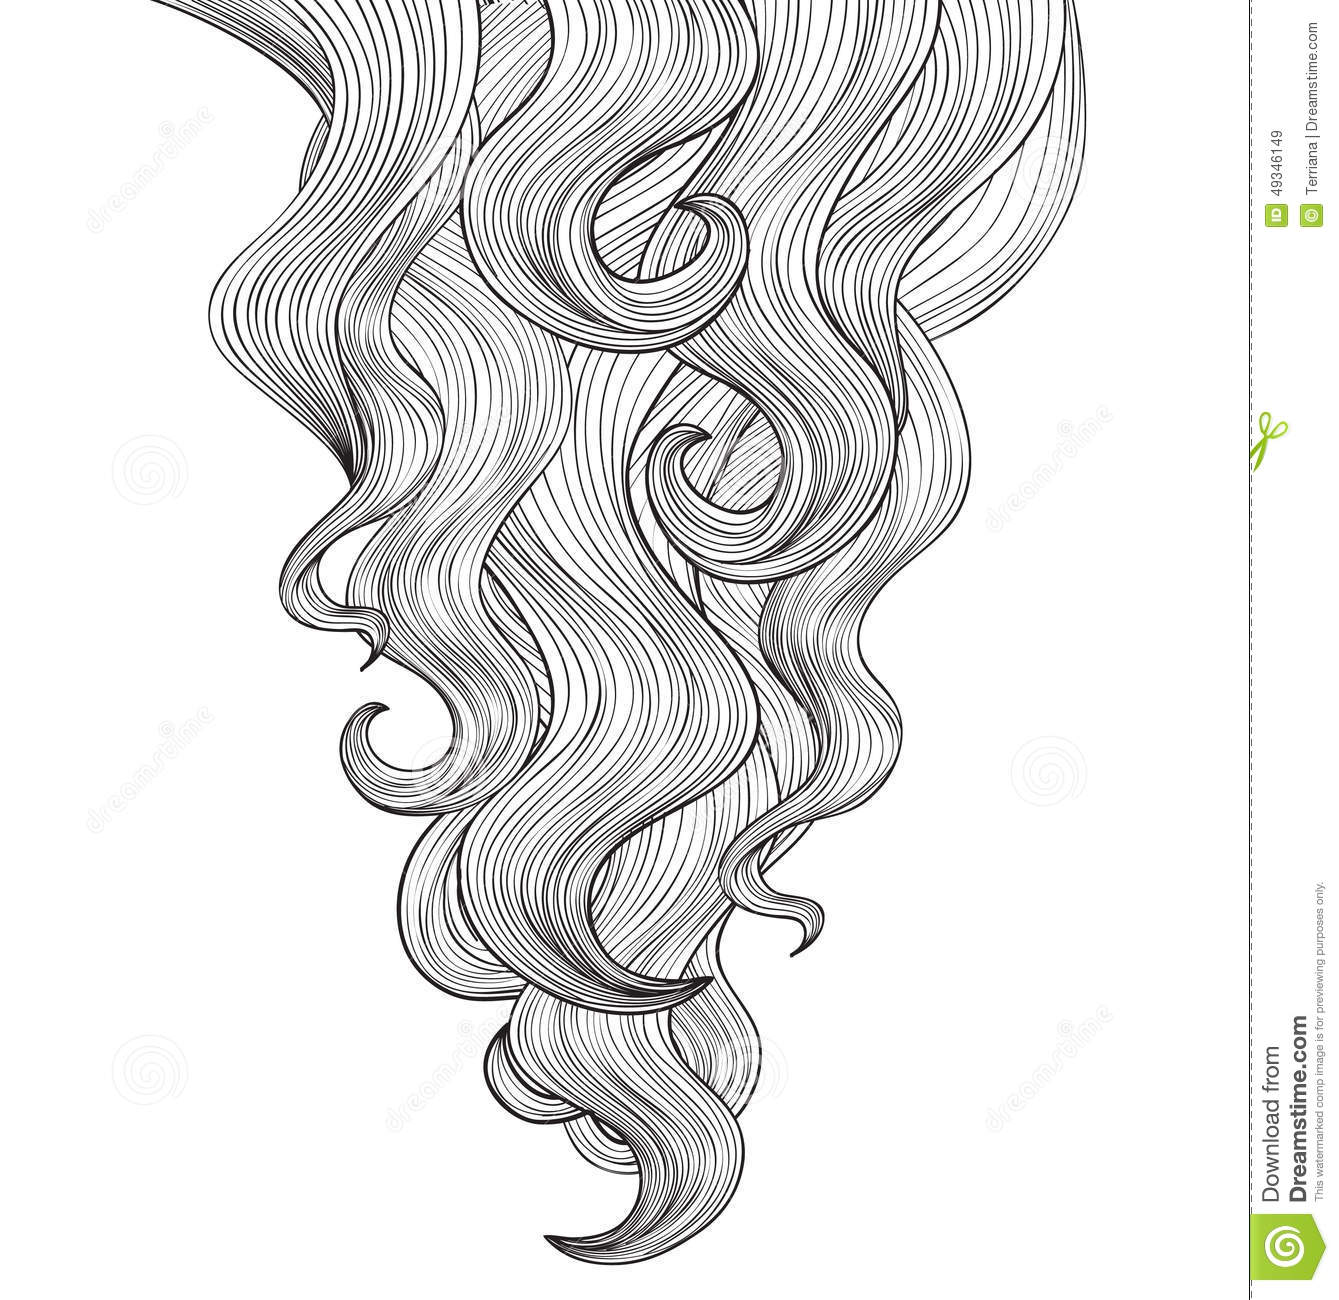 hair design backgrounds - photo #42